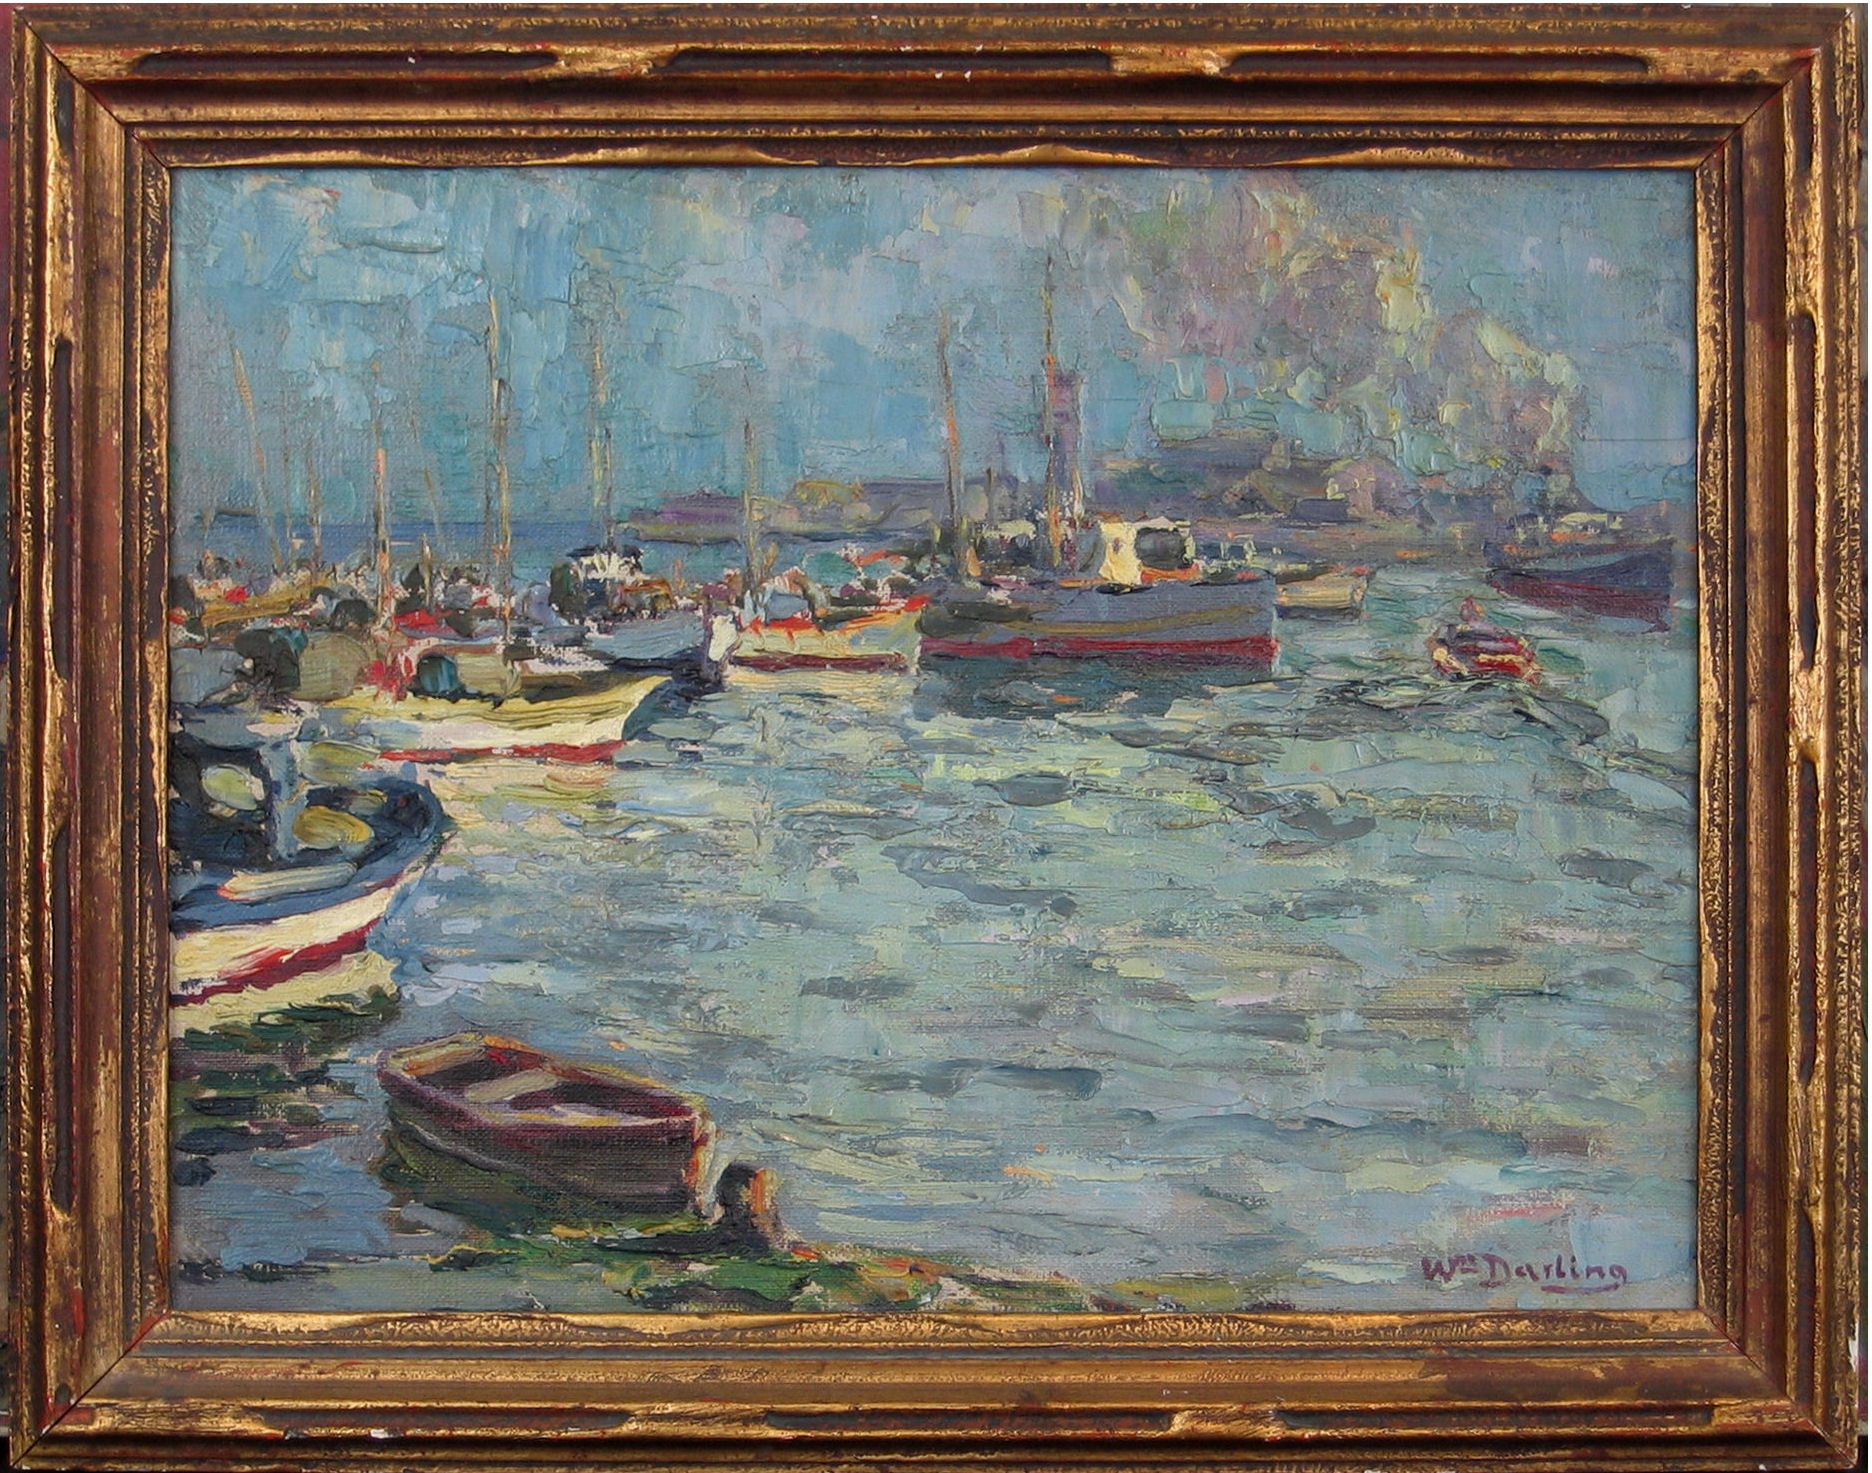 we buy paintings by william darling